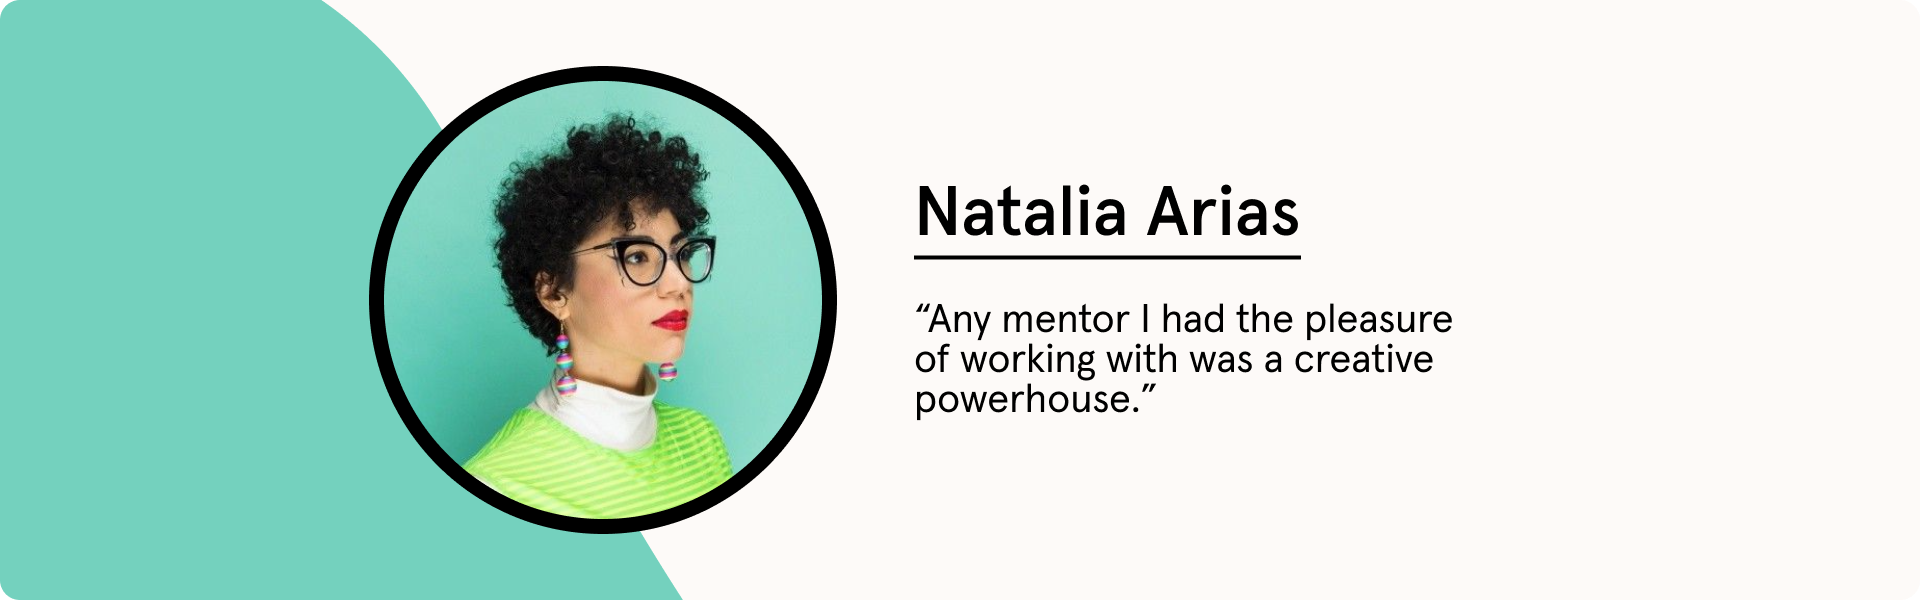 """Natalia Arias quote """"Any mentor I had the pleasure of working with was a creative powerhouse."""""""